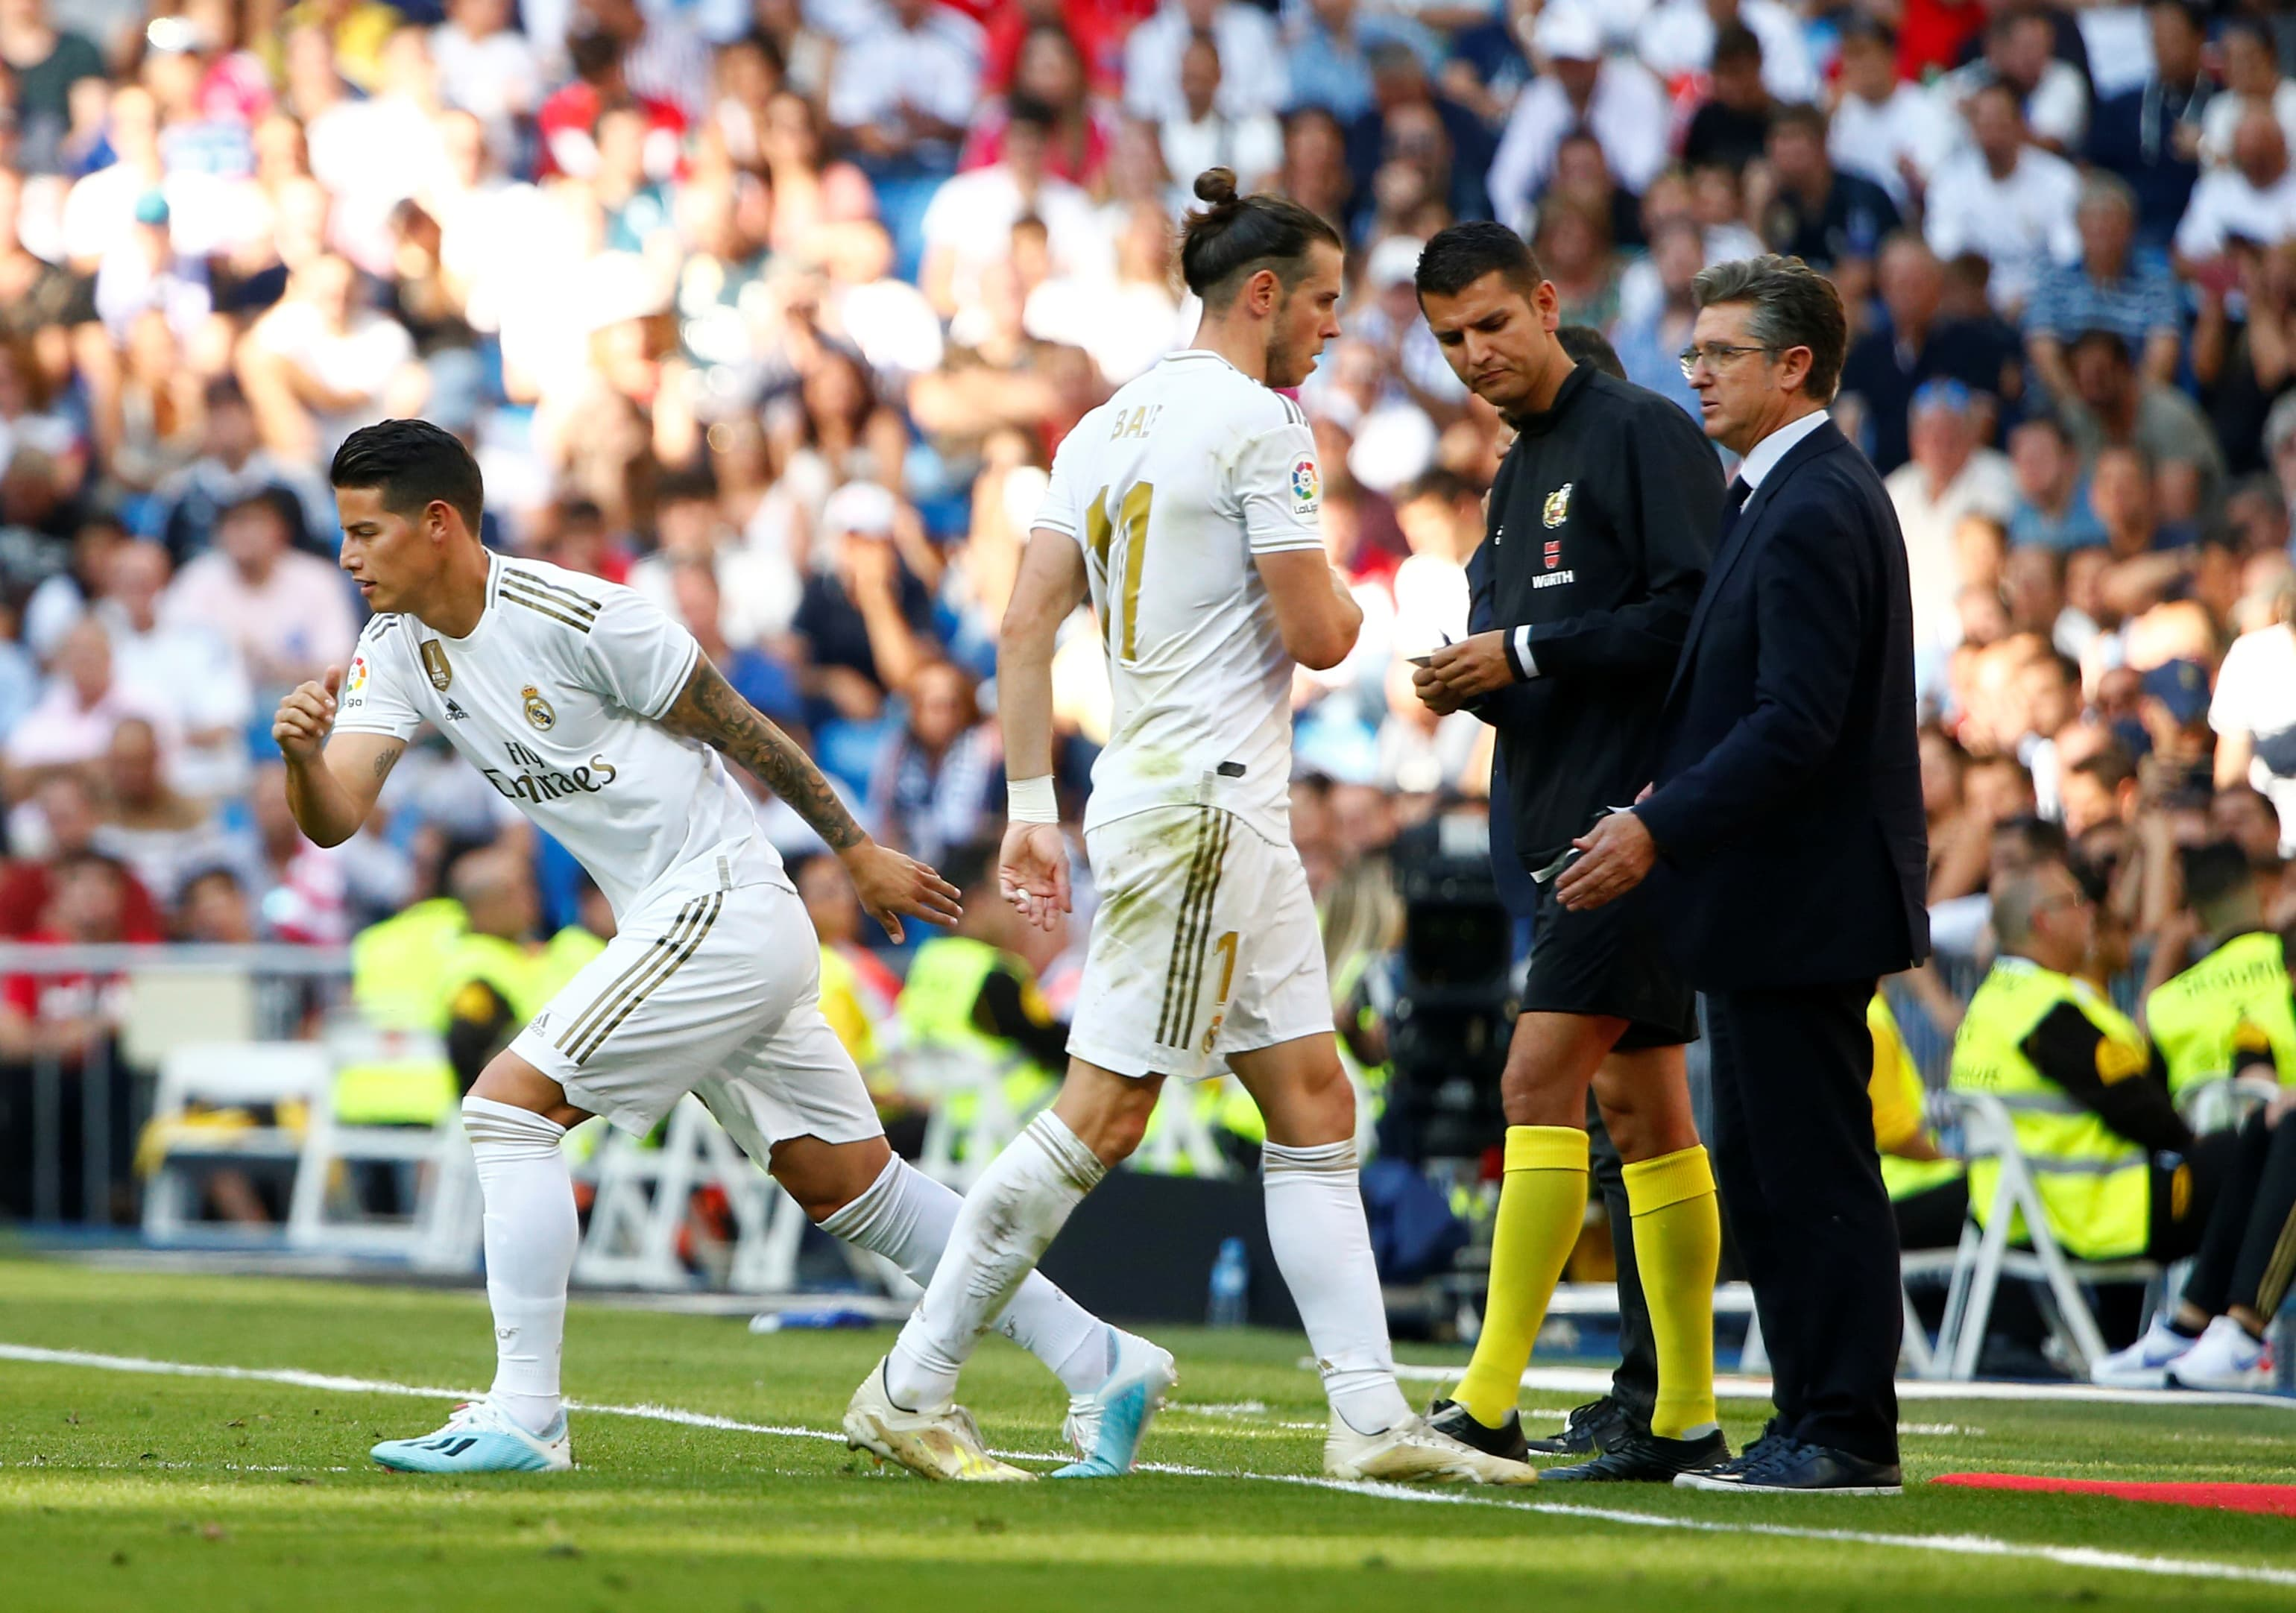 Real Madrid forced to sell four star players worth €200 million in January